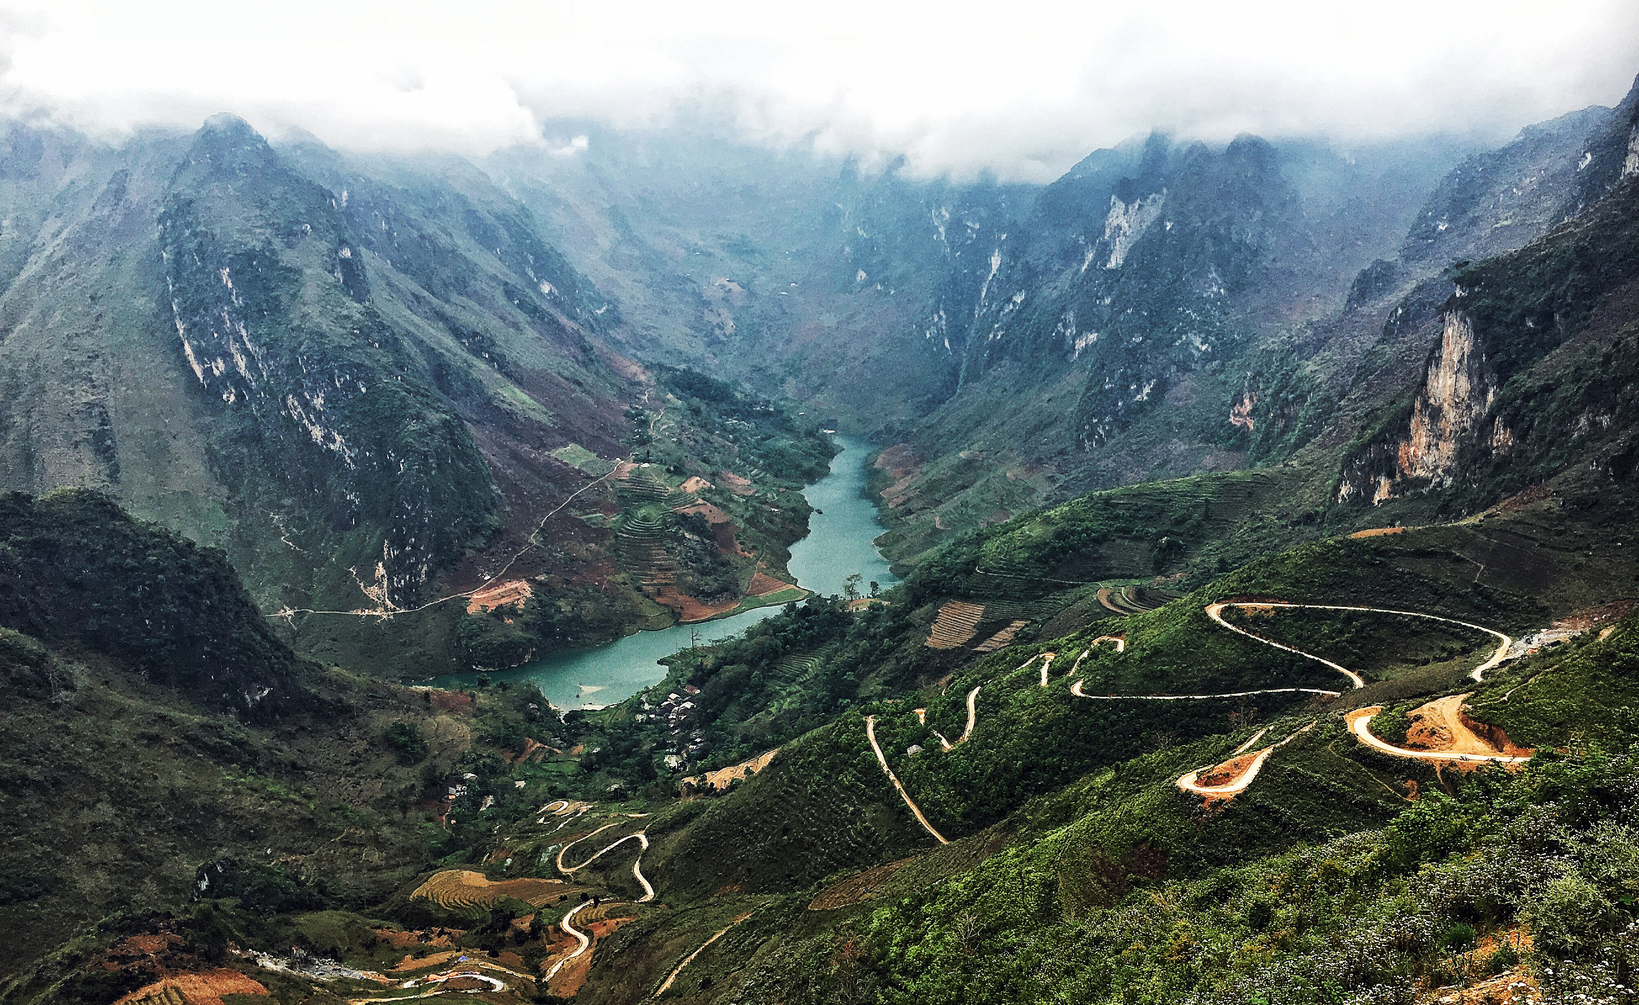 Ha Giang, The Most Beautiful Mountain Area in Vietnam!